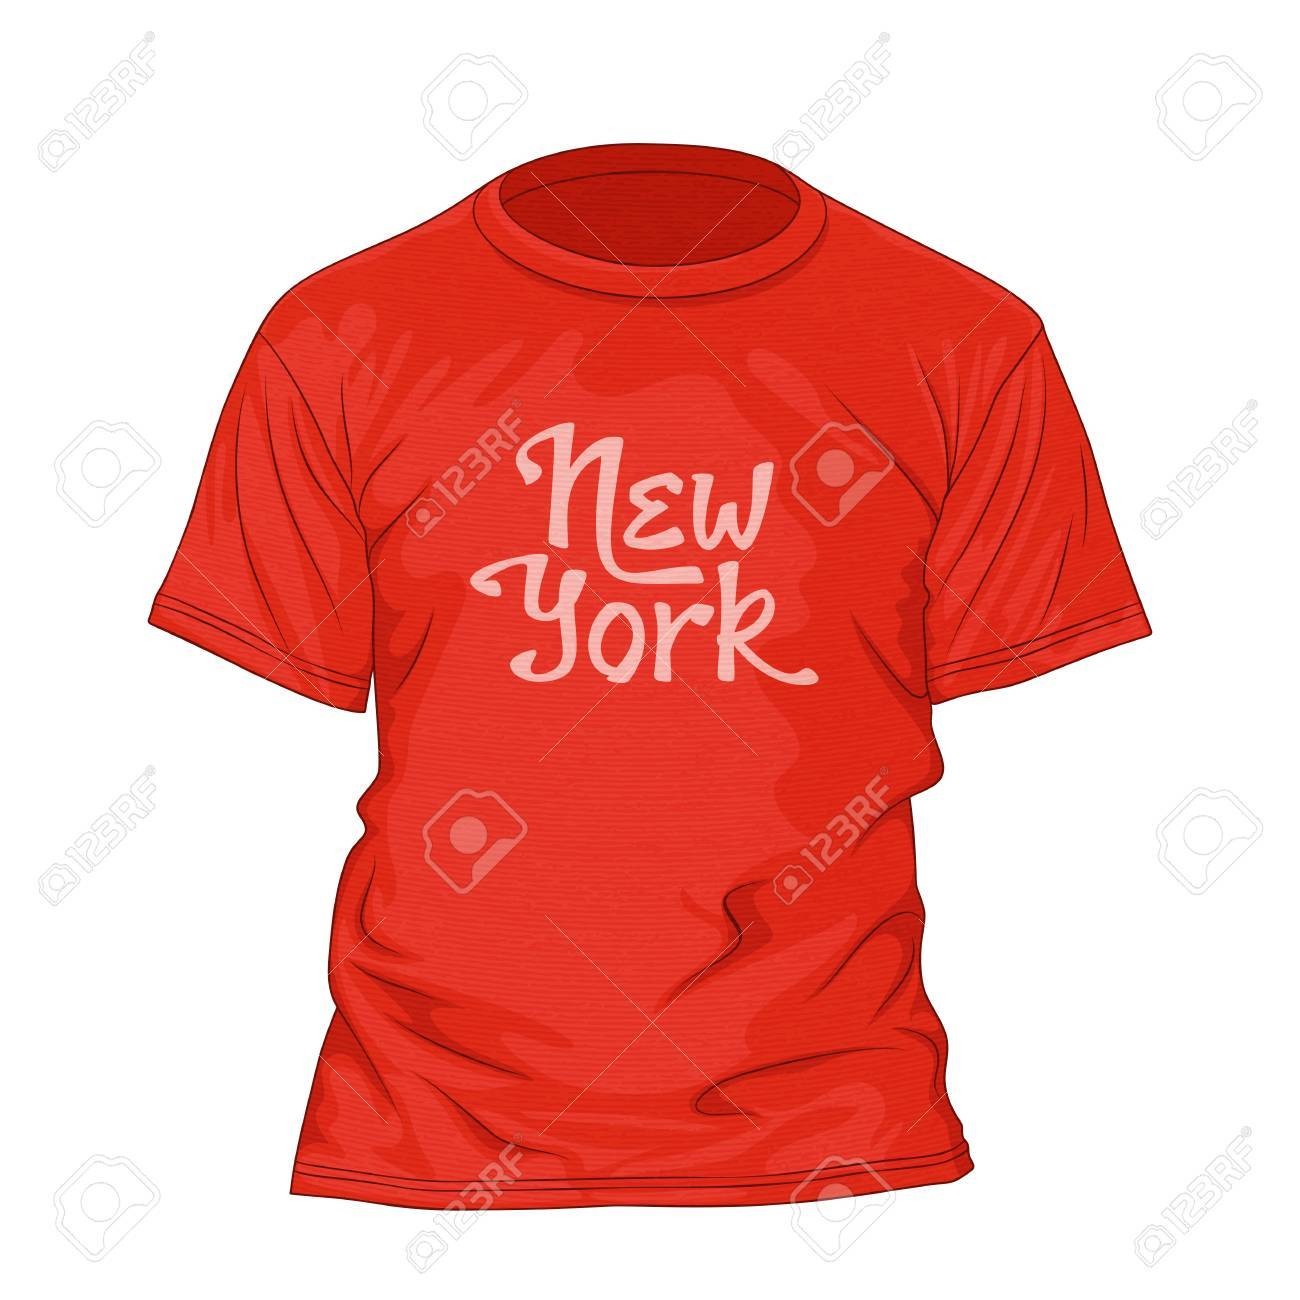 New York Hand Lettering. T-shirt Design Template With Texture ...